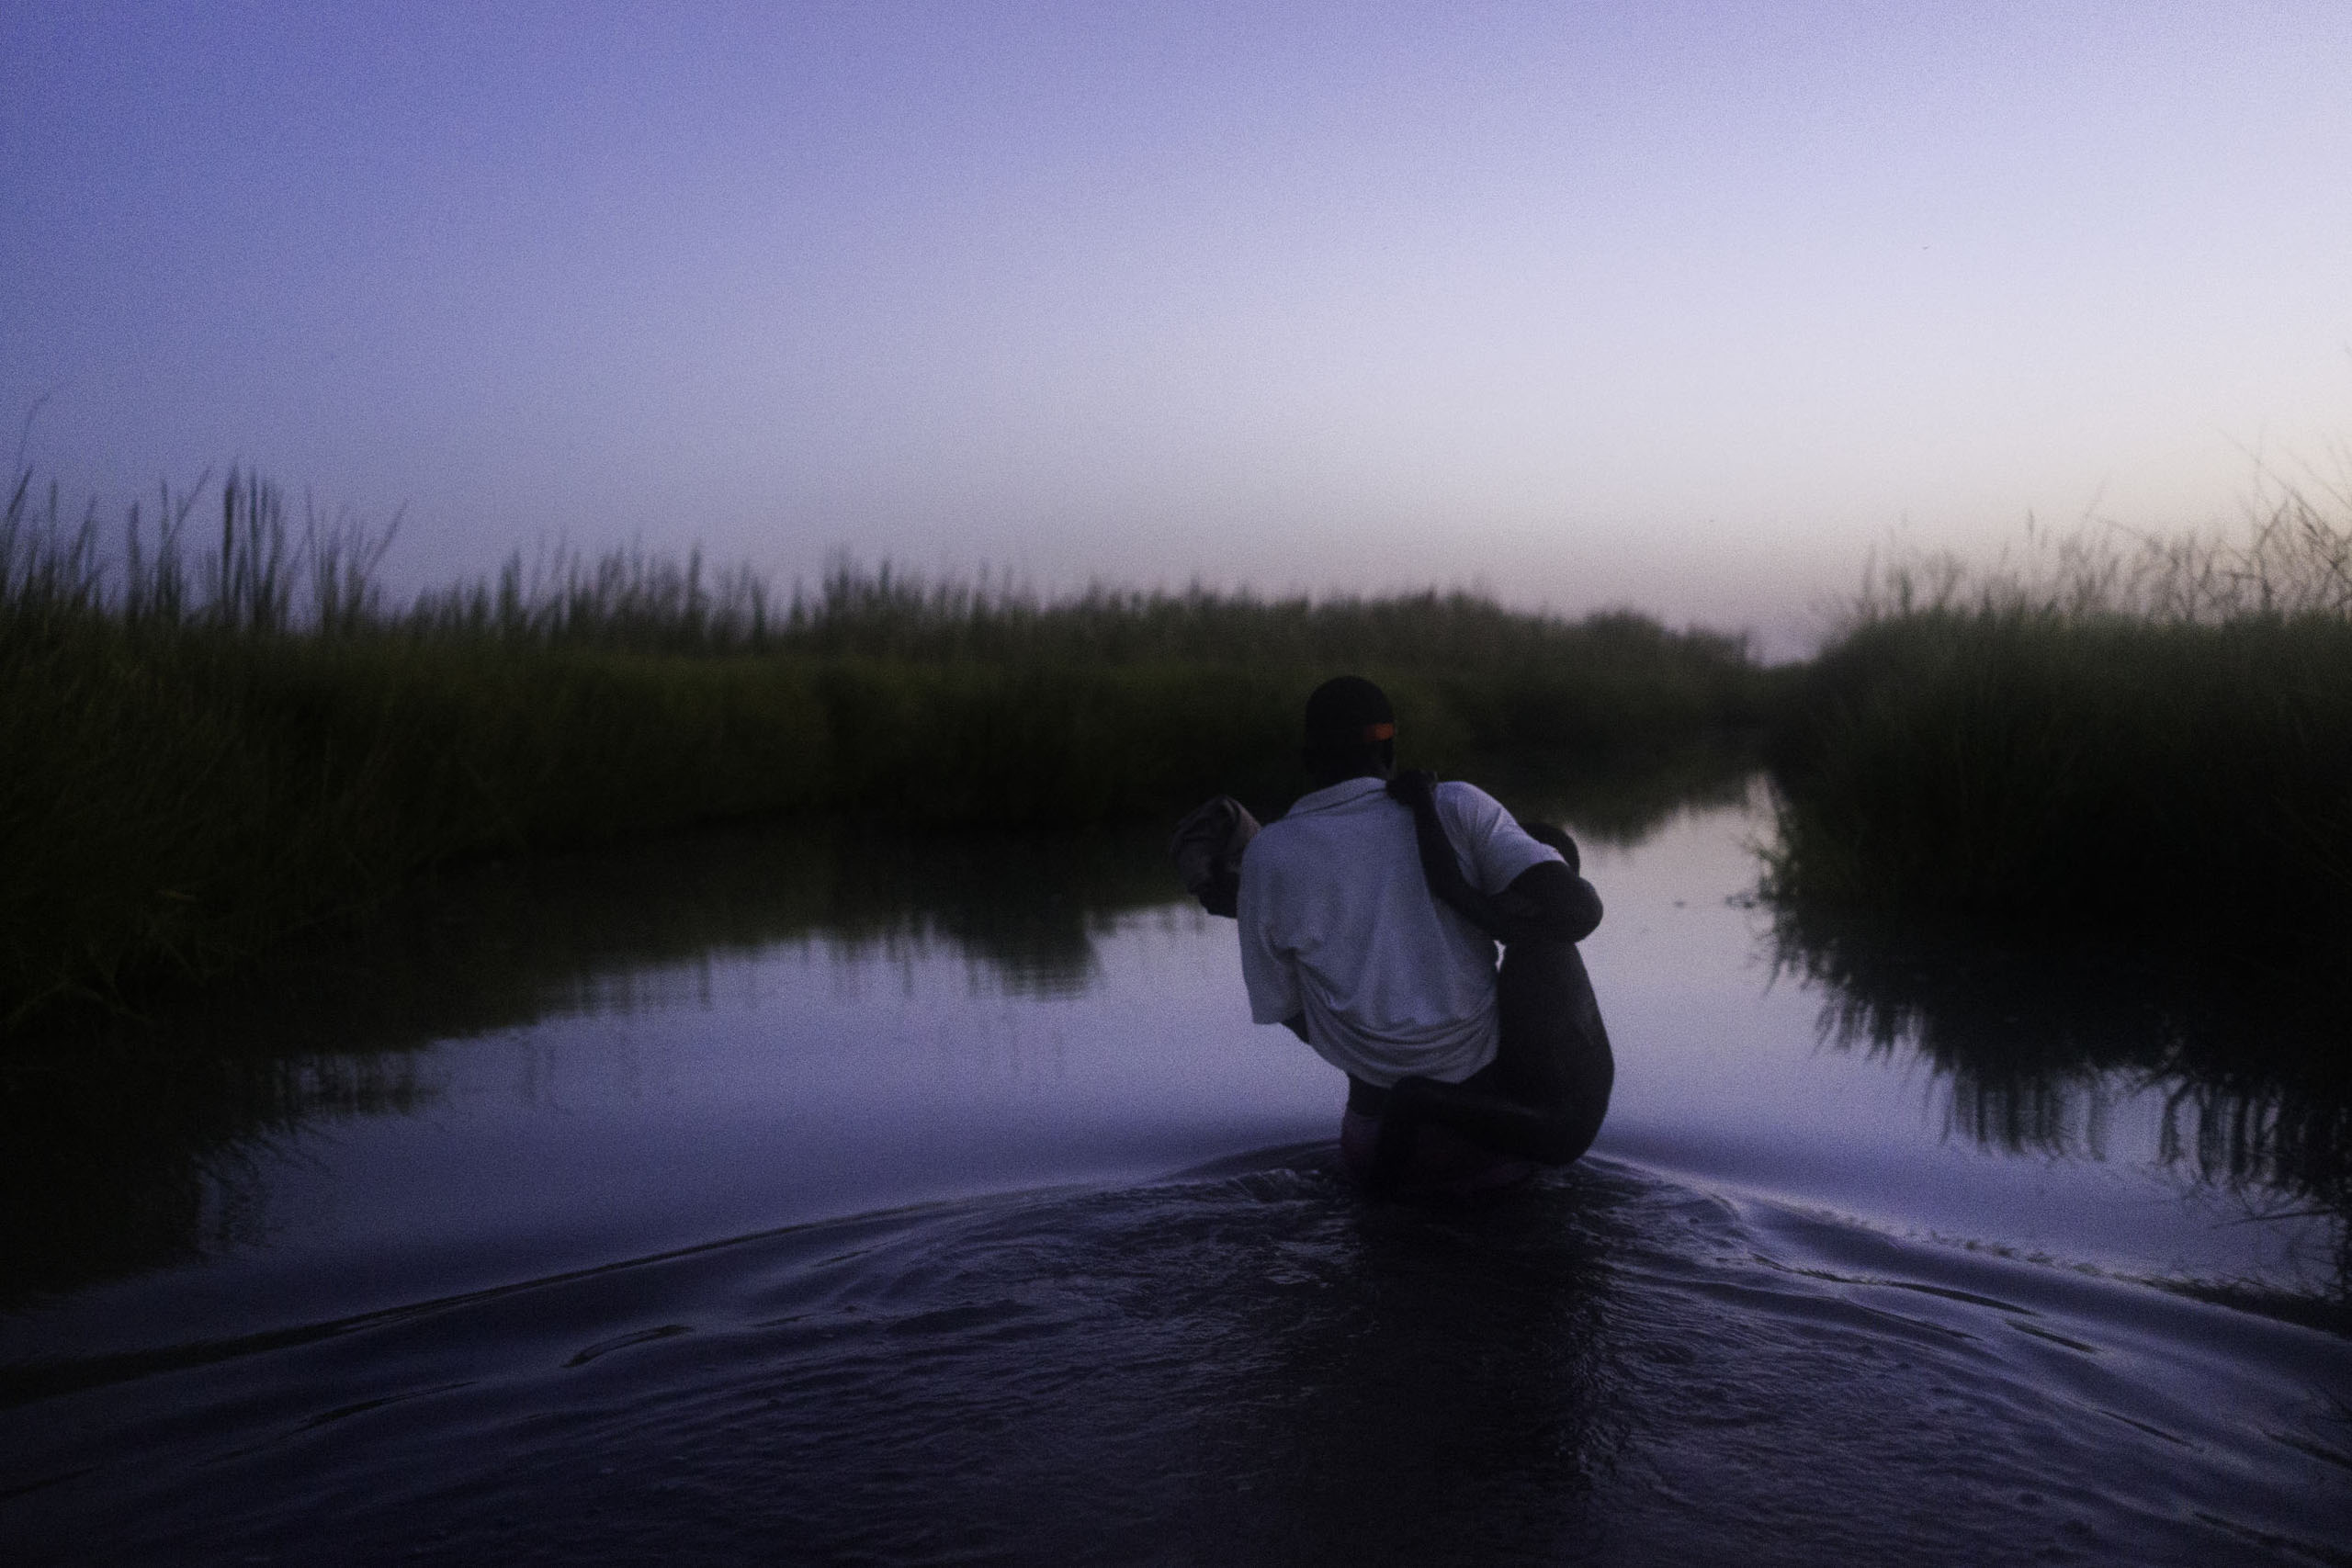 A staff worker with Doctors Without Borders helps a young boy cross a swamp at dusk to Kok Island, Unity State, South Sudan.